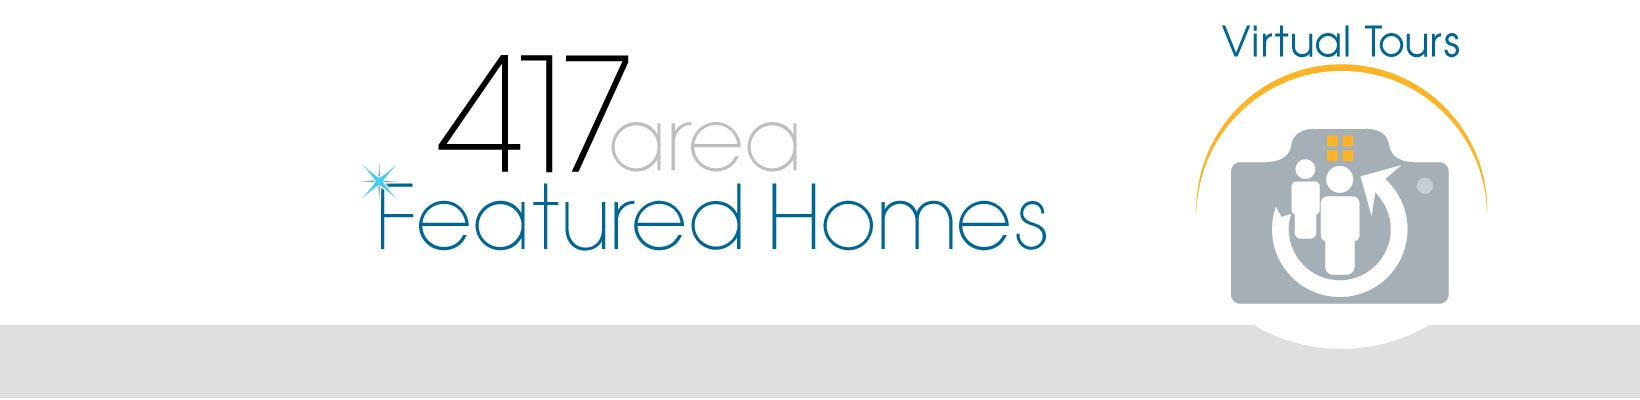 417 Area Featured Homes Virtual Tours Banner